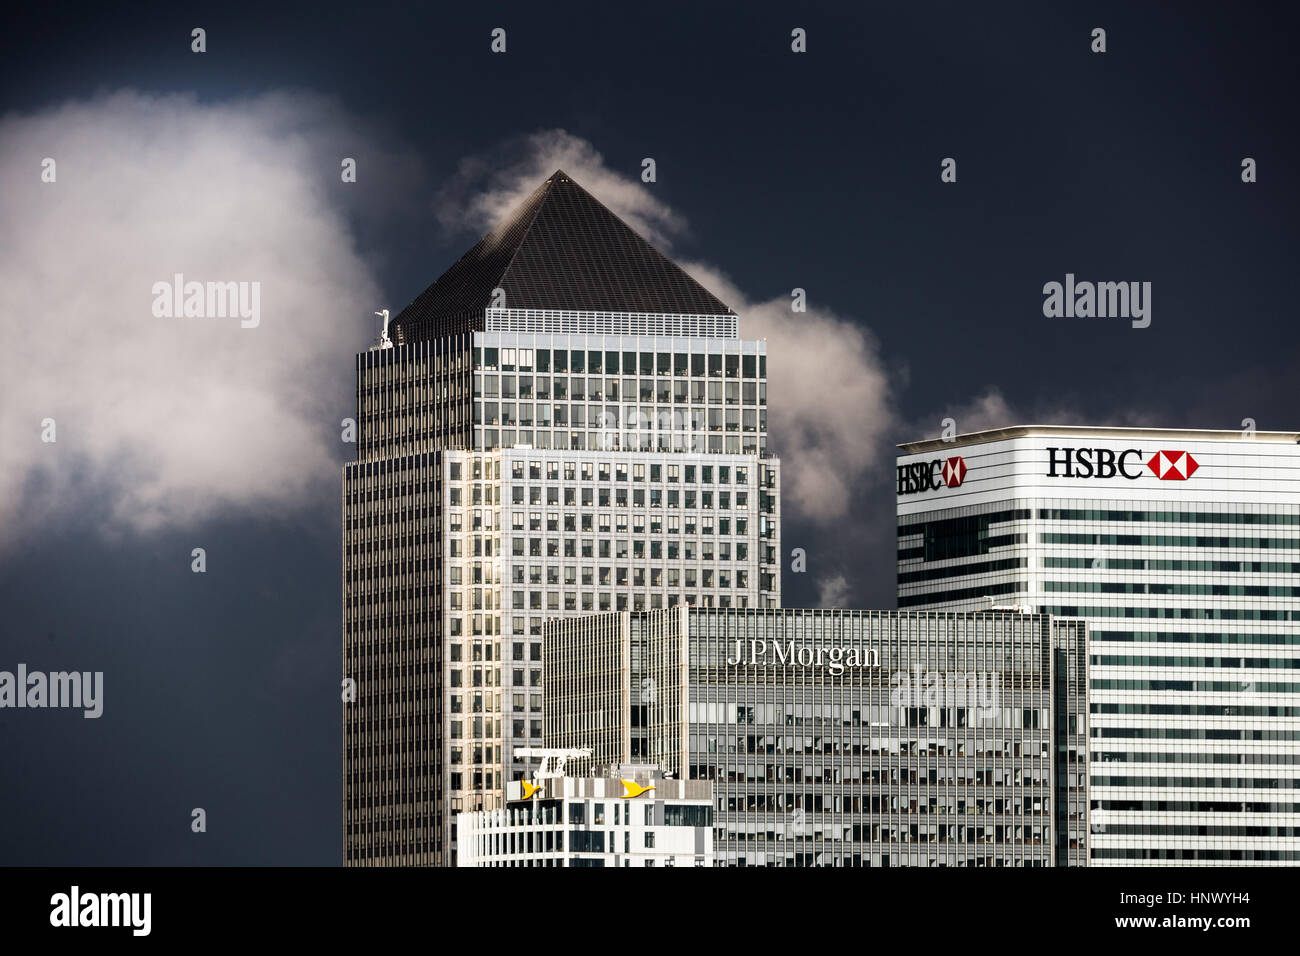 Steam and clouds over Canary Wharf business park buildings in London, UK. - Stock Image